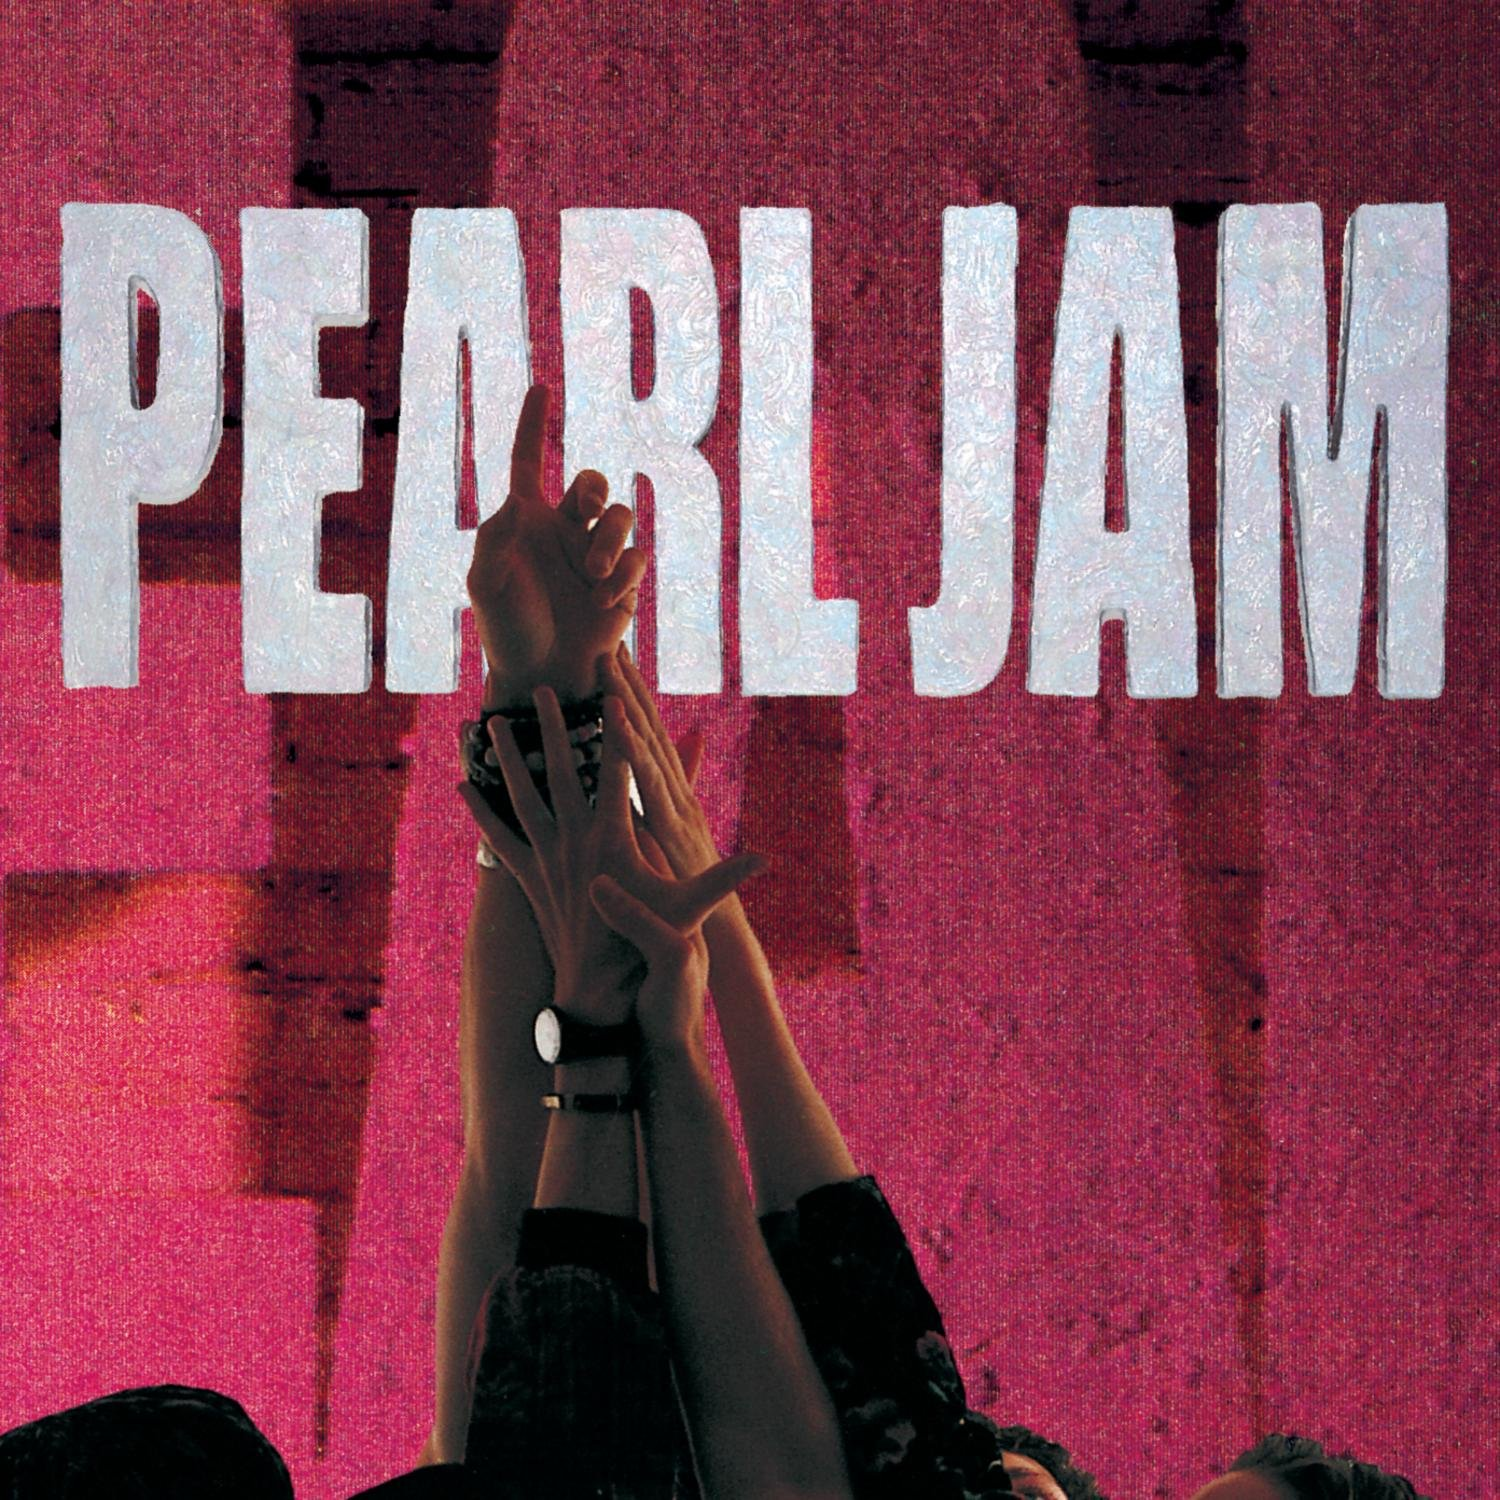 Art for Once by Pearl Jam